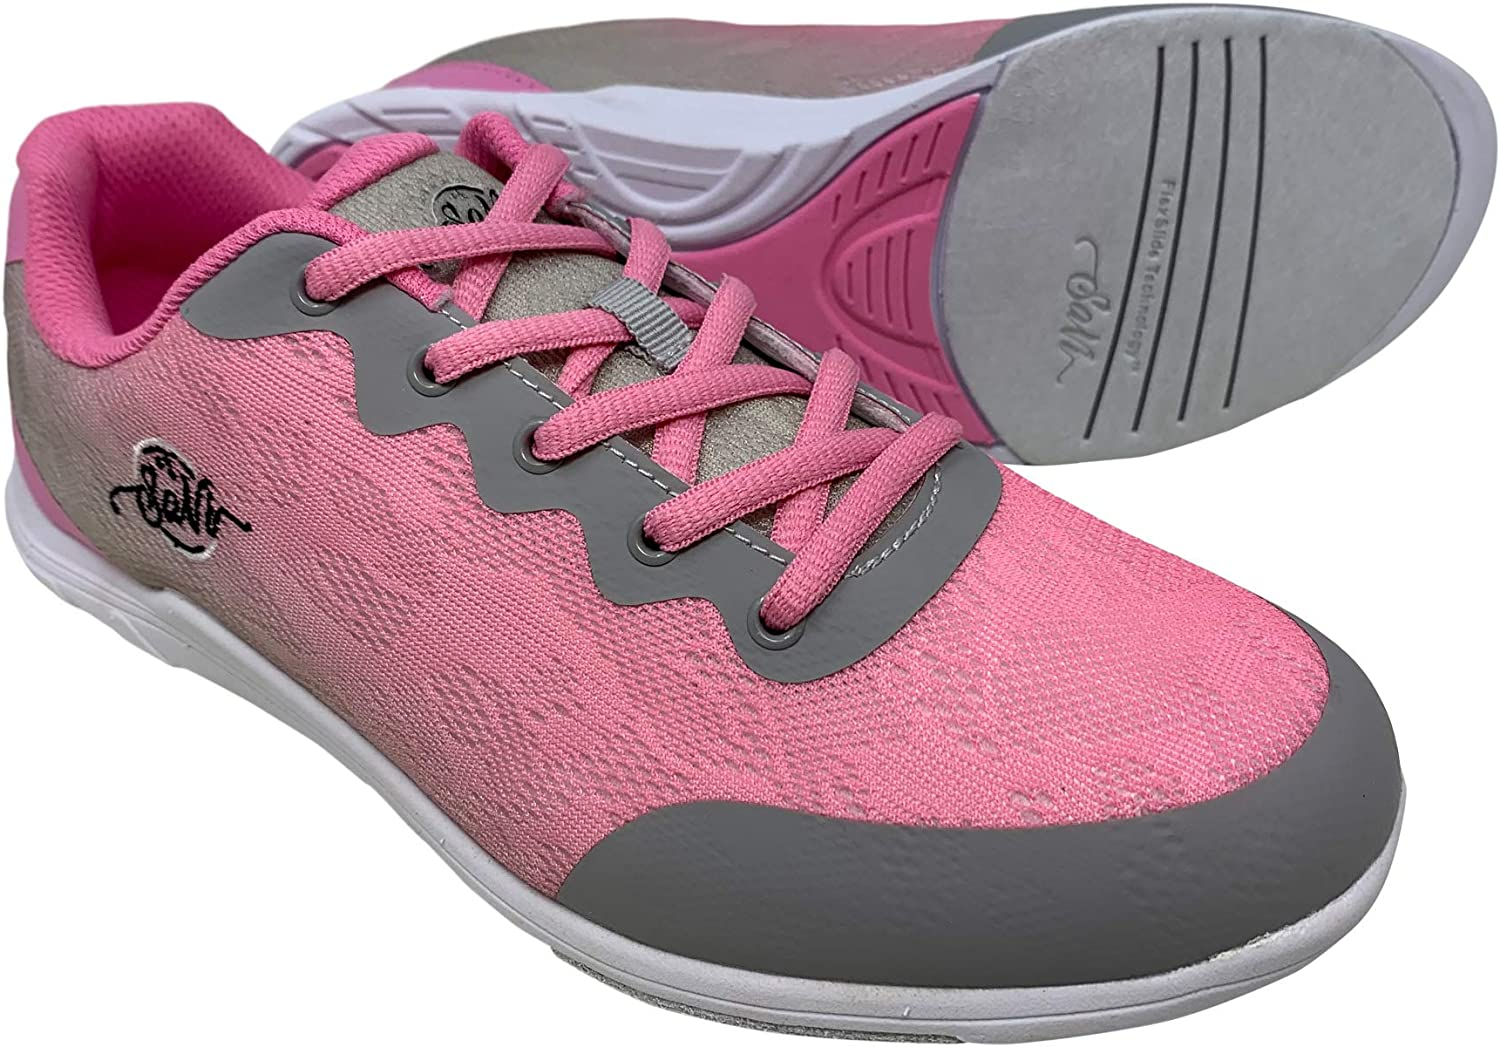 SaVi Bowling Women's Savannah Pink/Grey Mesh Bowling Shoes Ultra Lightweight Lace Up with Universal Soles Suitable for Right or Left Handed Bowlers